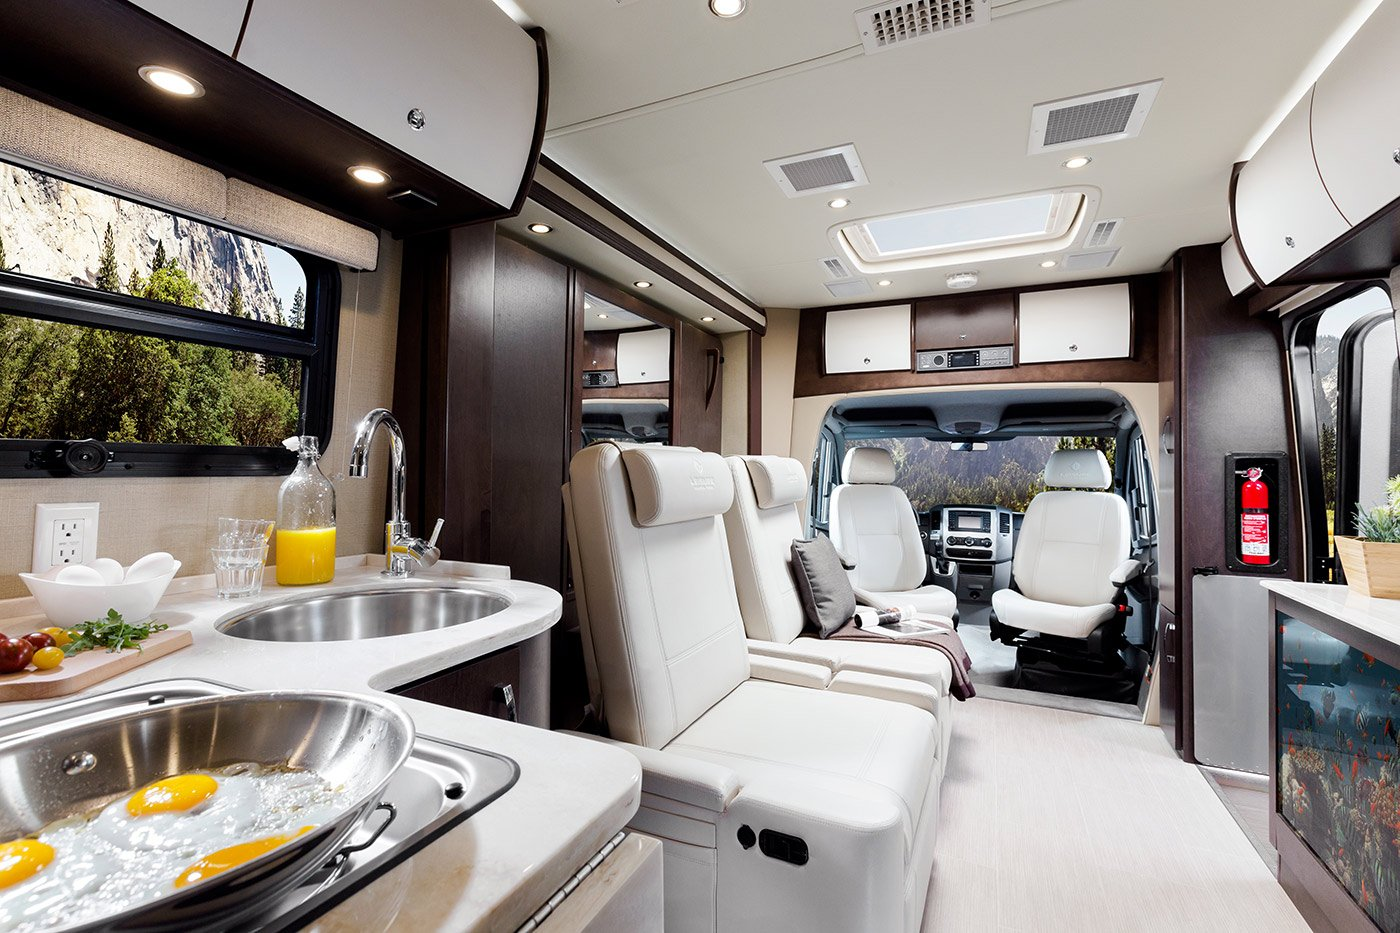 Class C Motorhome Floor Plans Introducing The 2016 Unity U24mb Leisure Lounge Plus